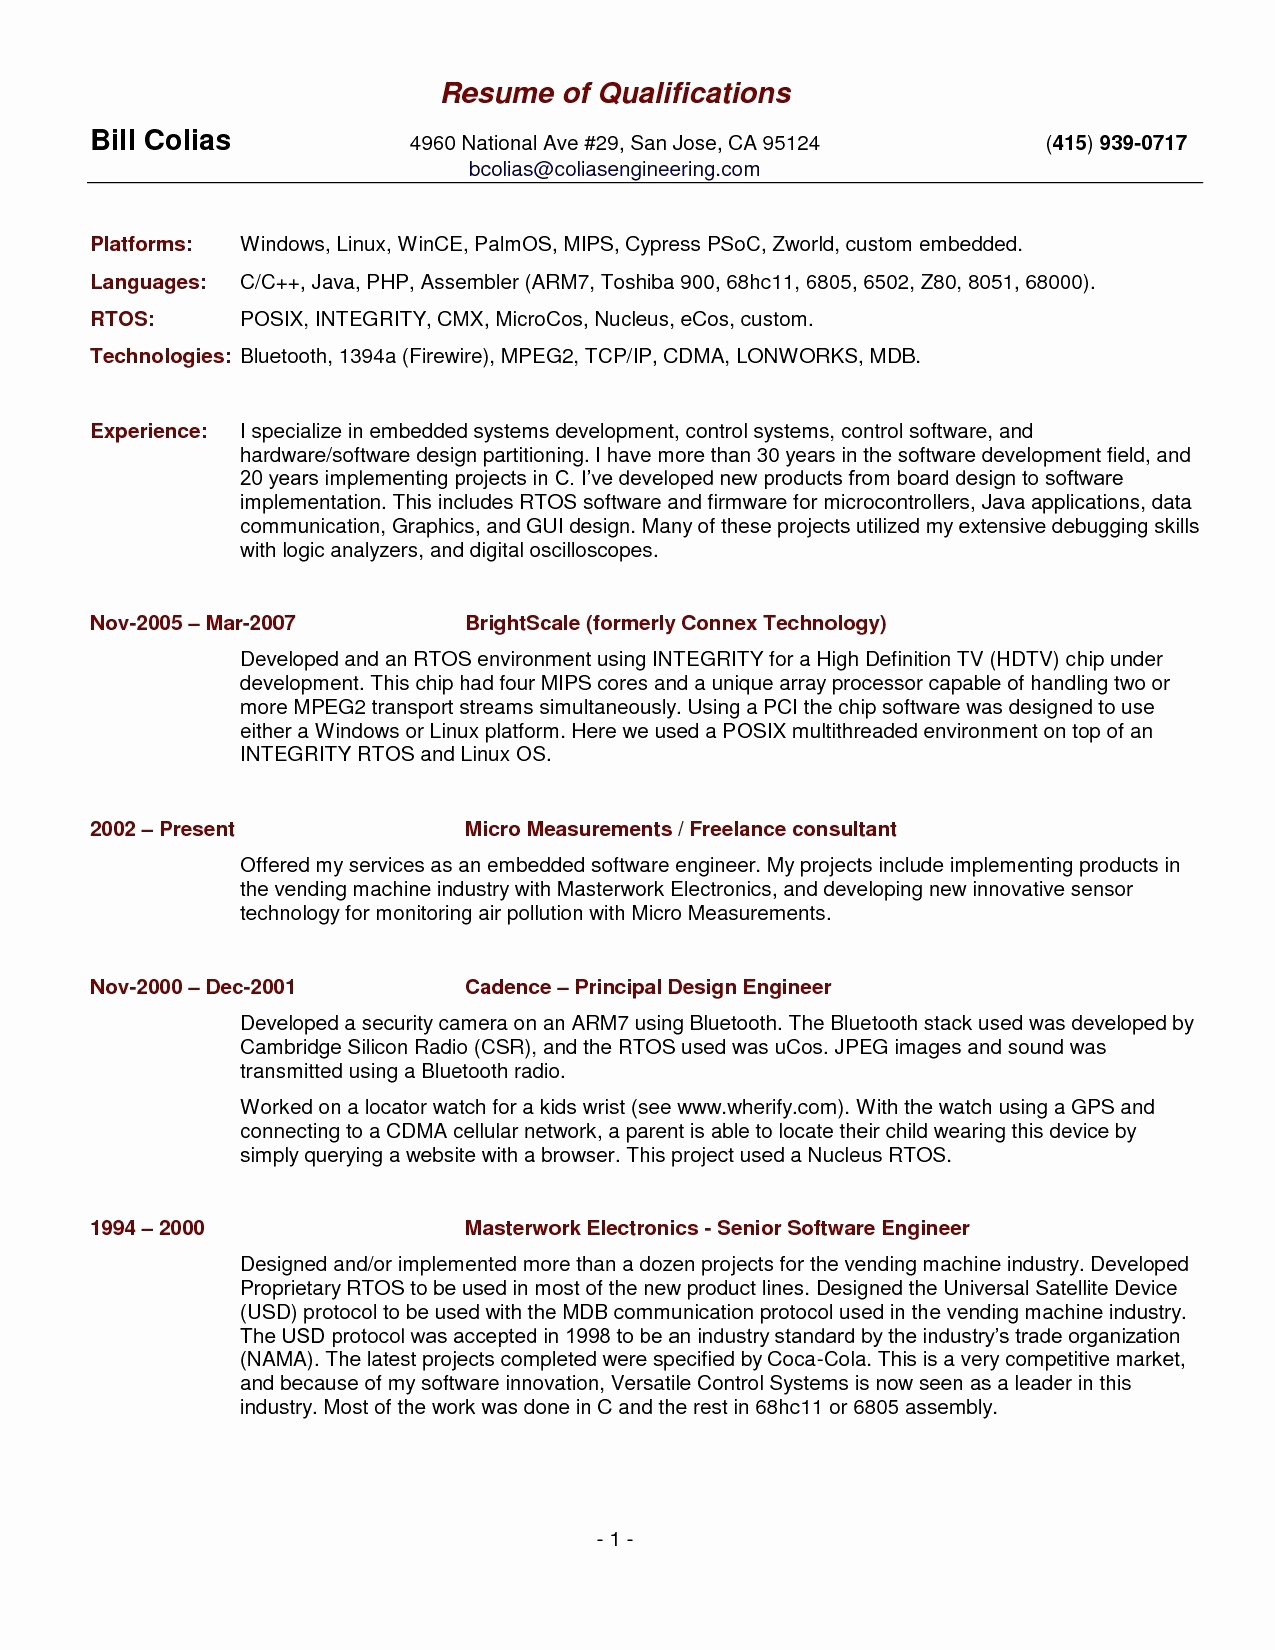 Photographer Resume Template Download - Irs Letter Template Download